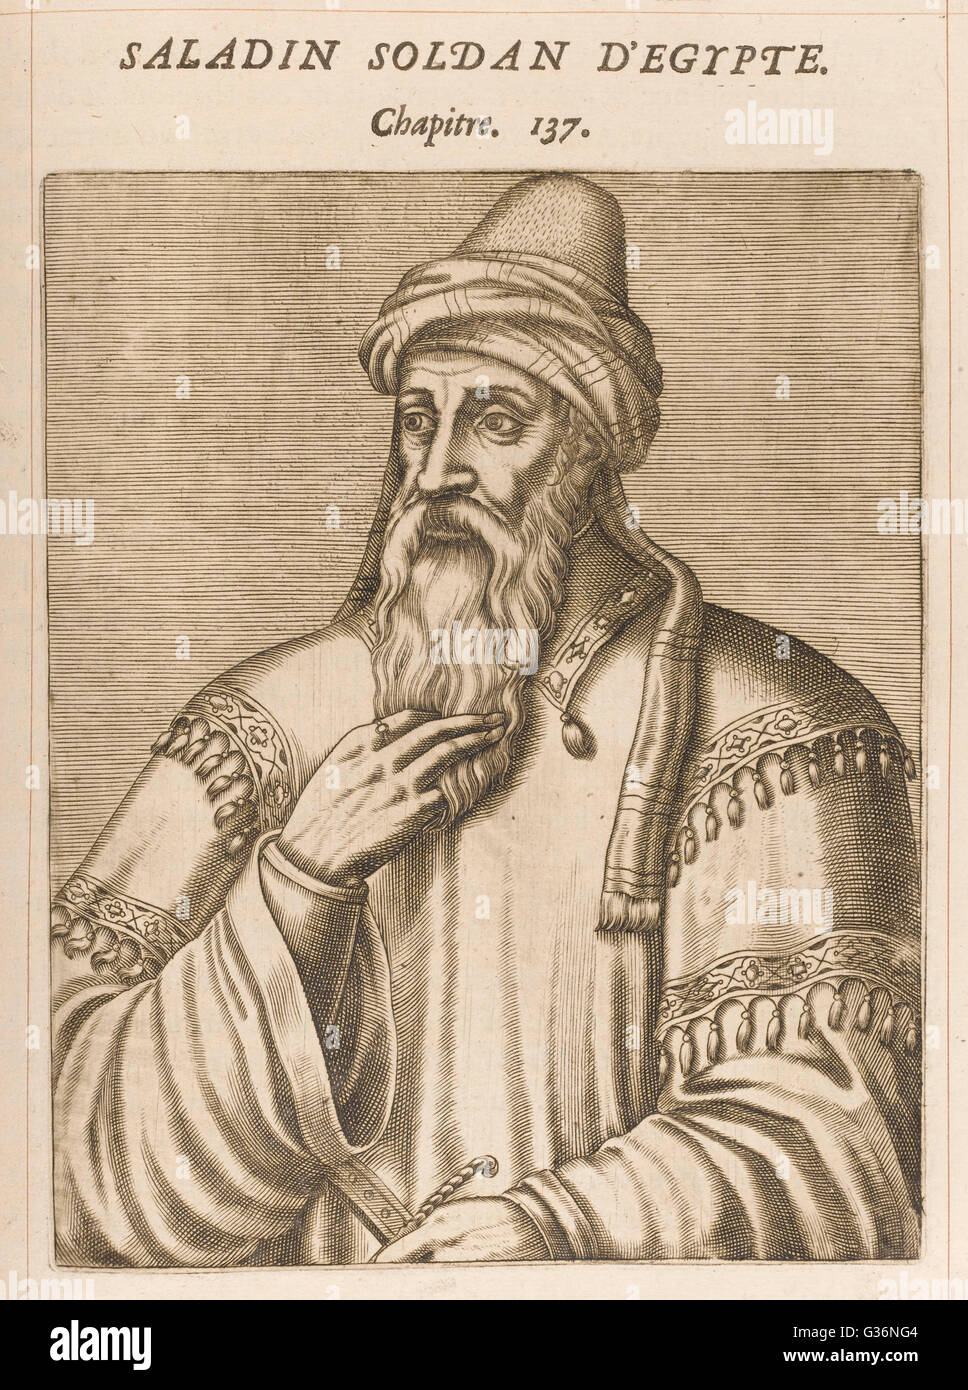 Salah Ad-Din Yusuf Ibn Ayyub (1138-1193), known as Saladin, Muslim Sultan of Egypt and Syria (reigned 1174-1193). - Stock Image